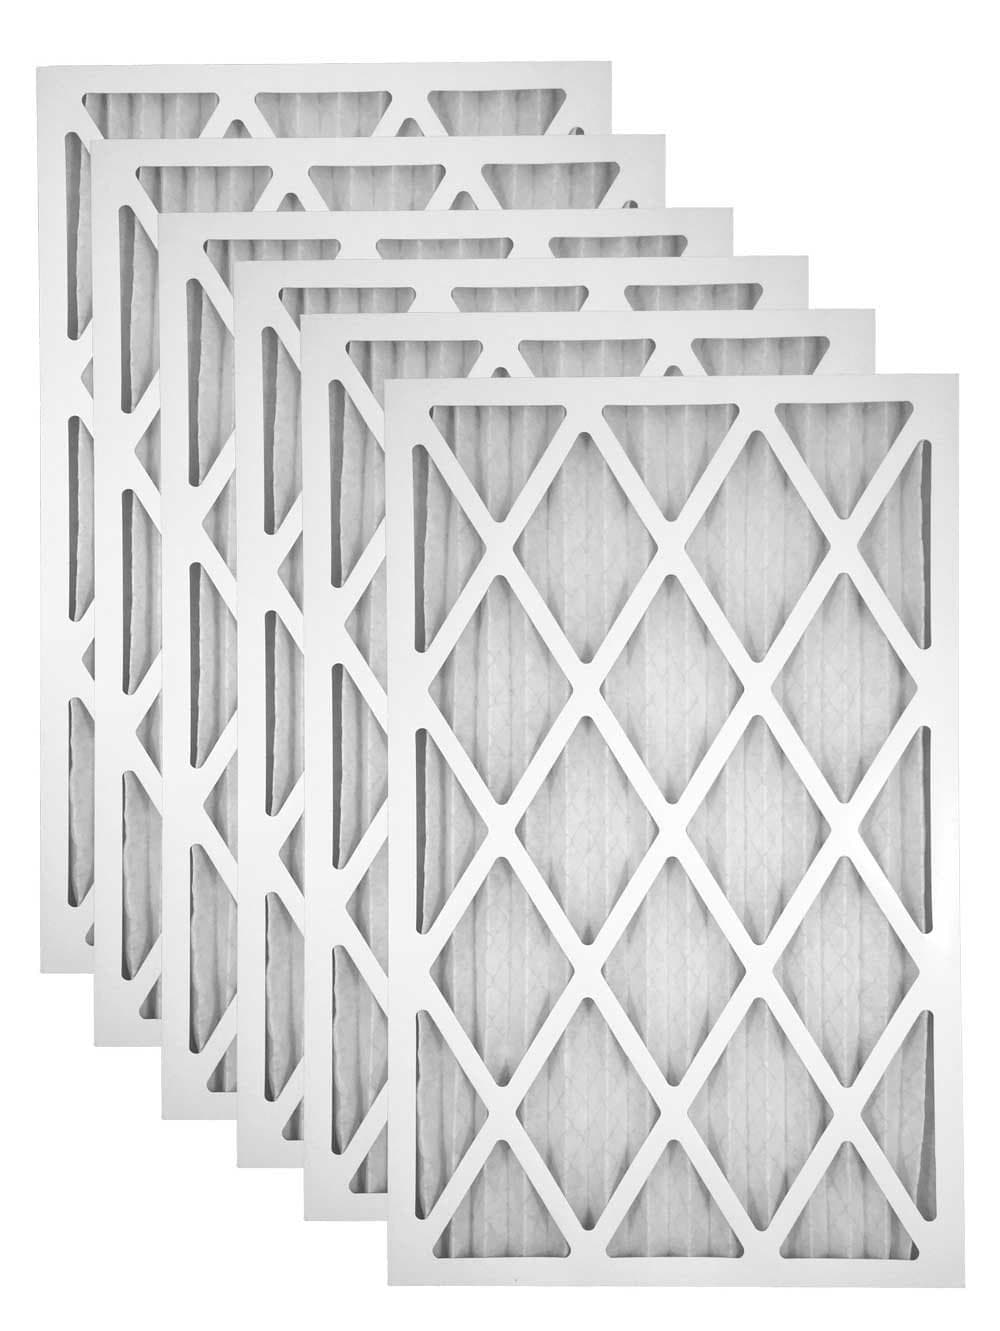 20x24x1 Merv 11 Pleated AC Furnace Filter - Case of 6